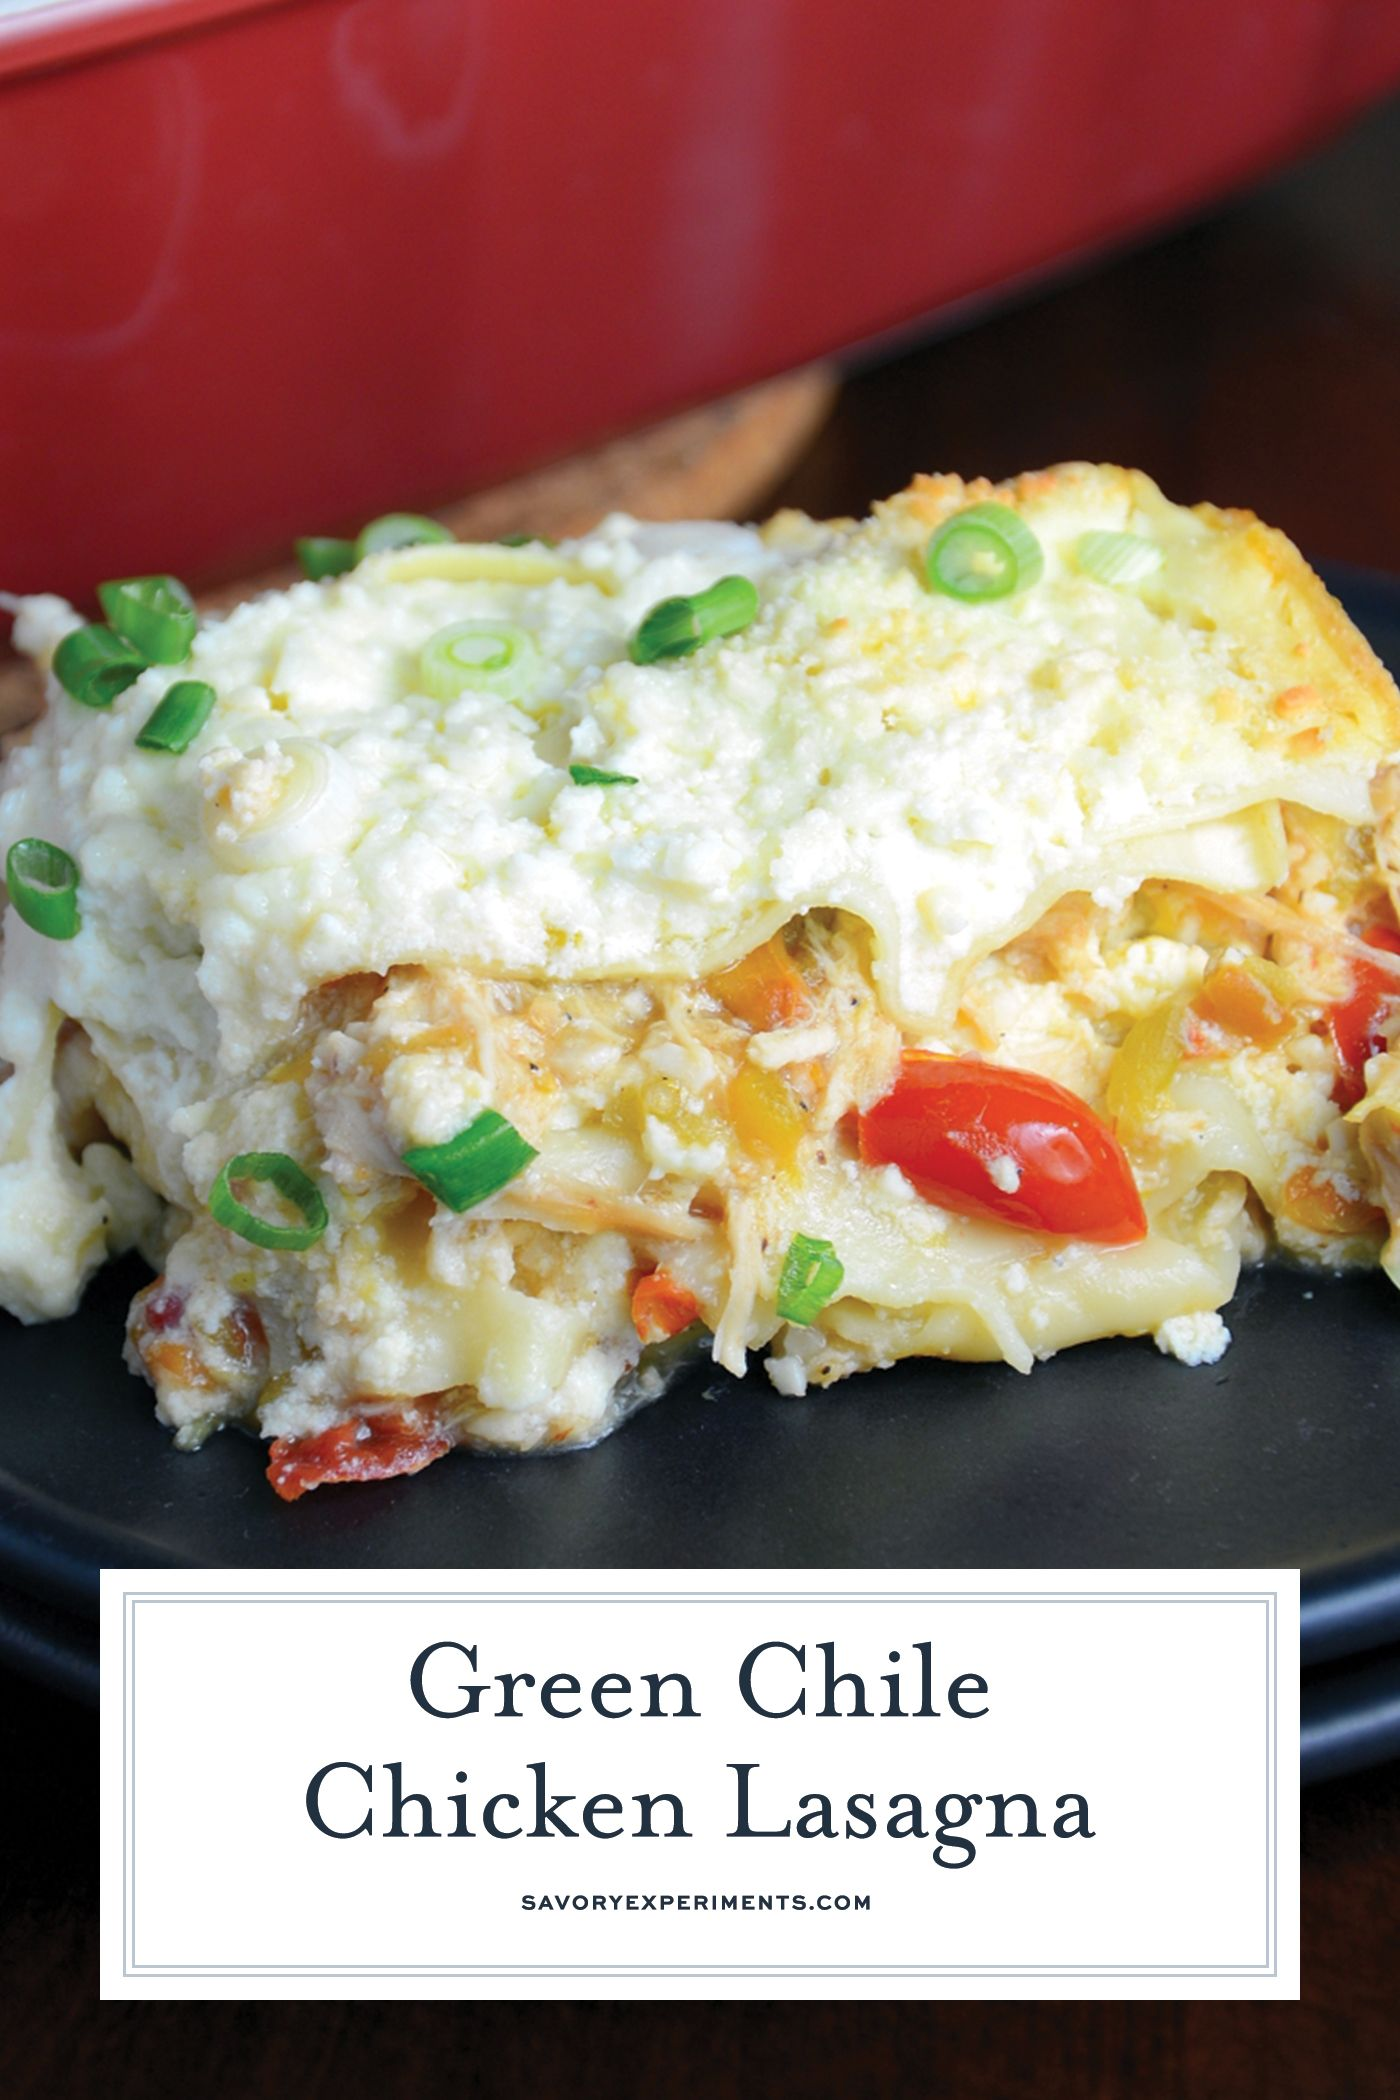 How to make green chile chicken lasagna recipe